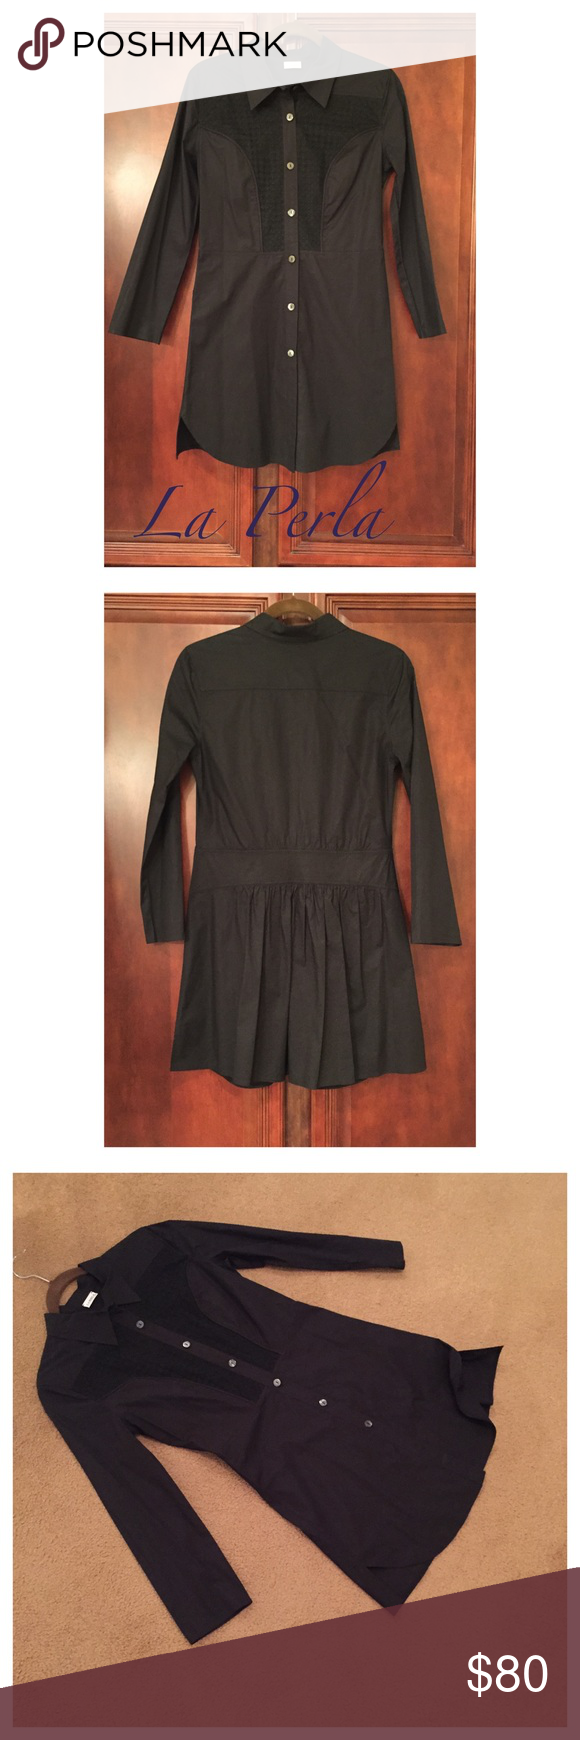 """La Perla Tunic or Shirt Dress La Perla Made in Italy black shirt dress or tunic it ha slits on the sides approx 2"""" it is in nice condition size 42 No Trades La Perla Dresses"""